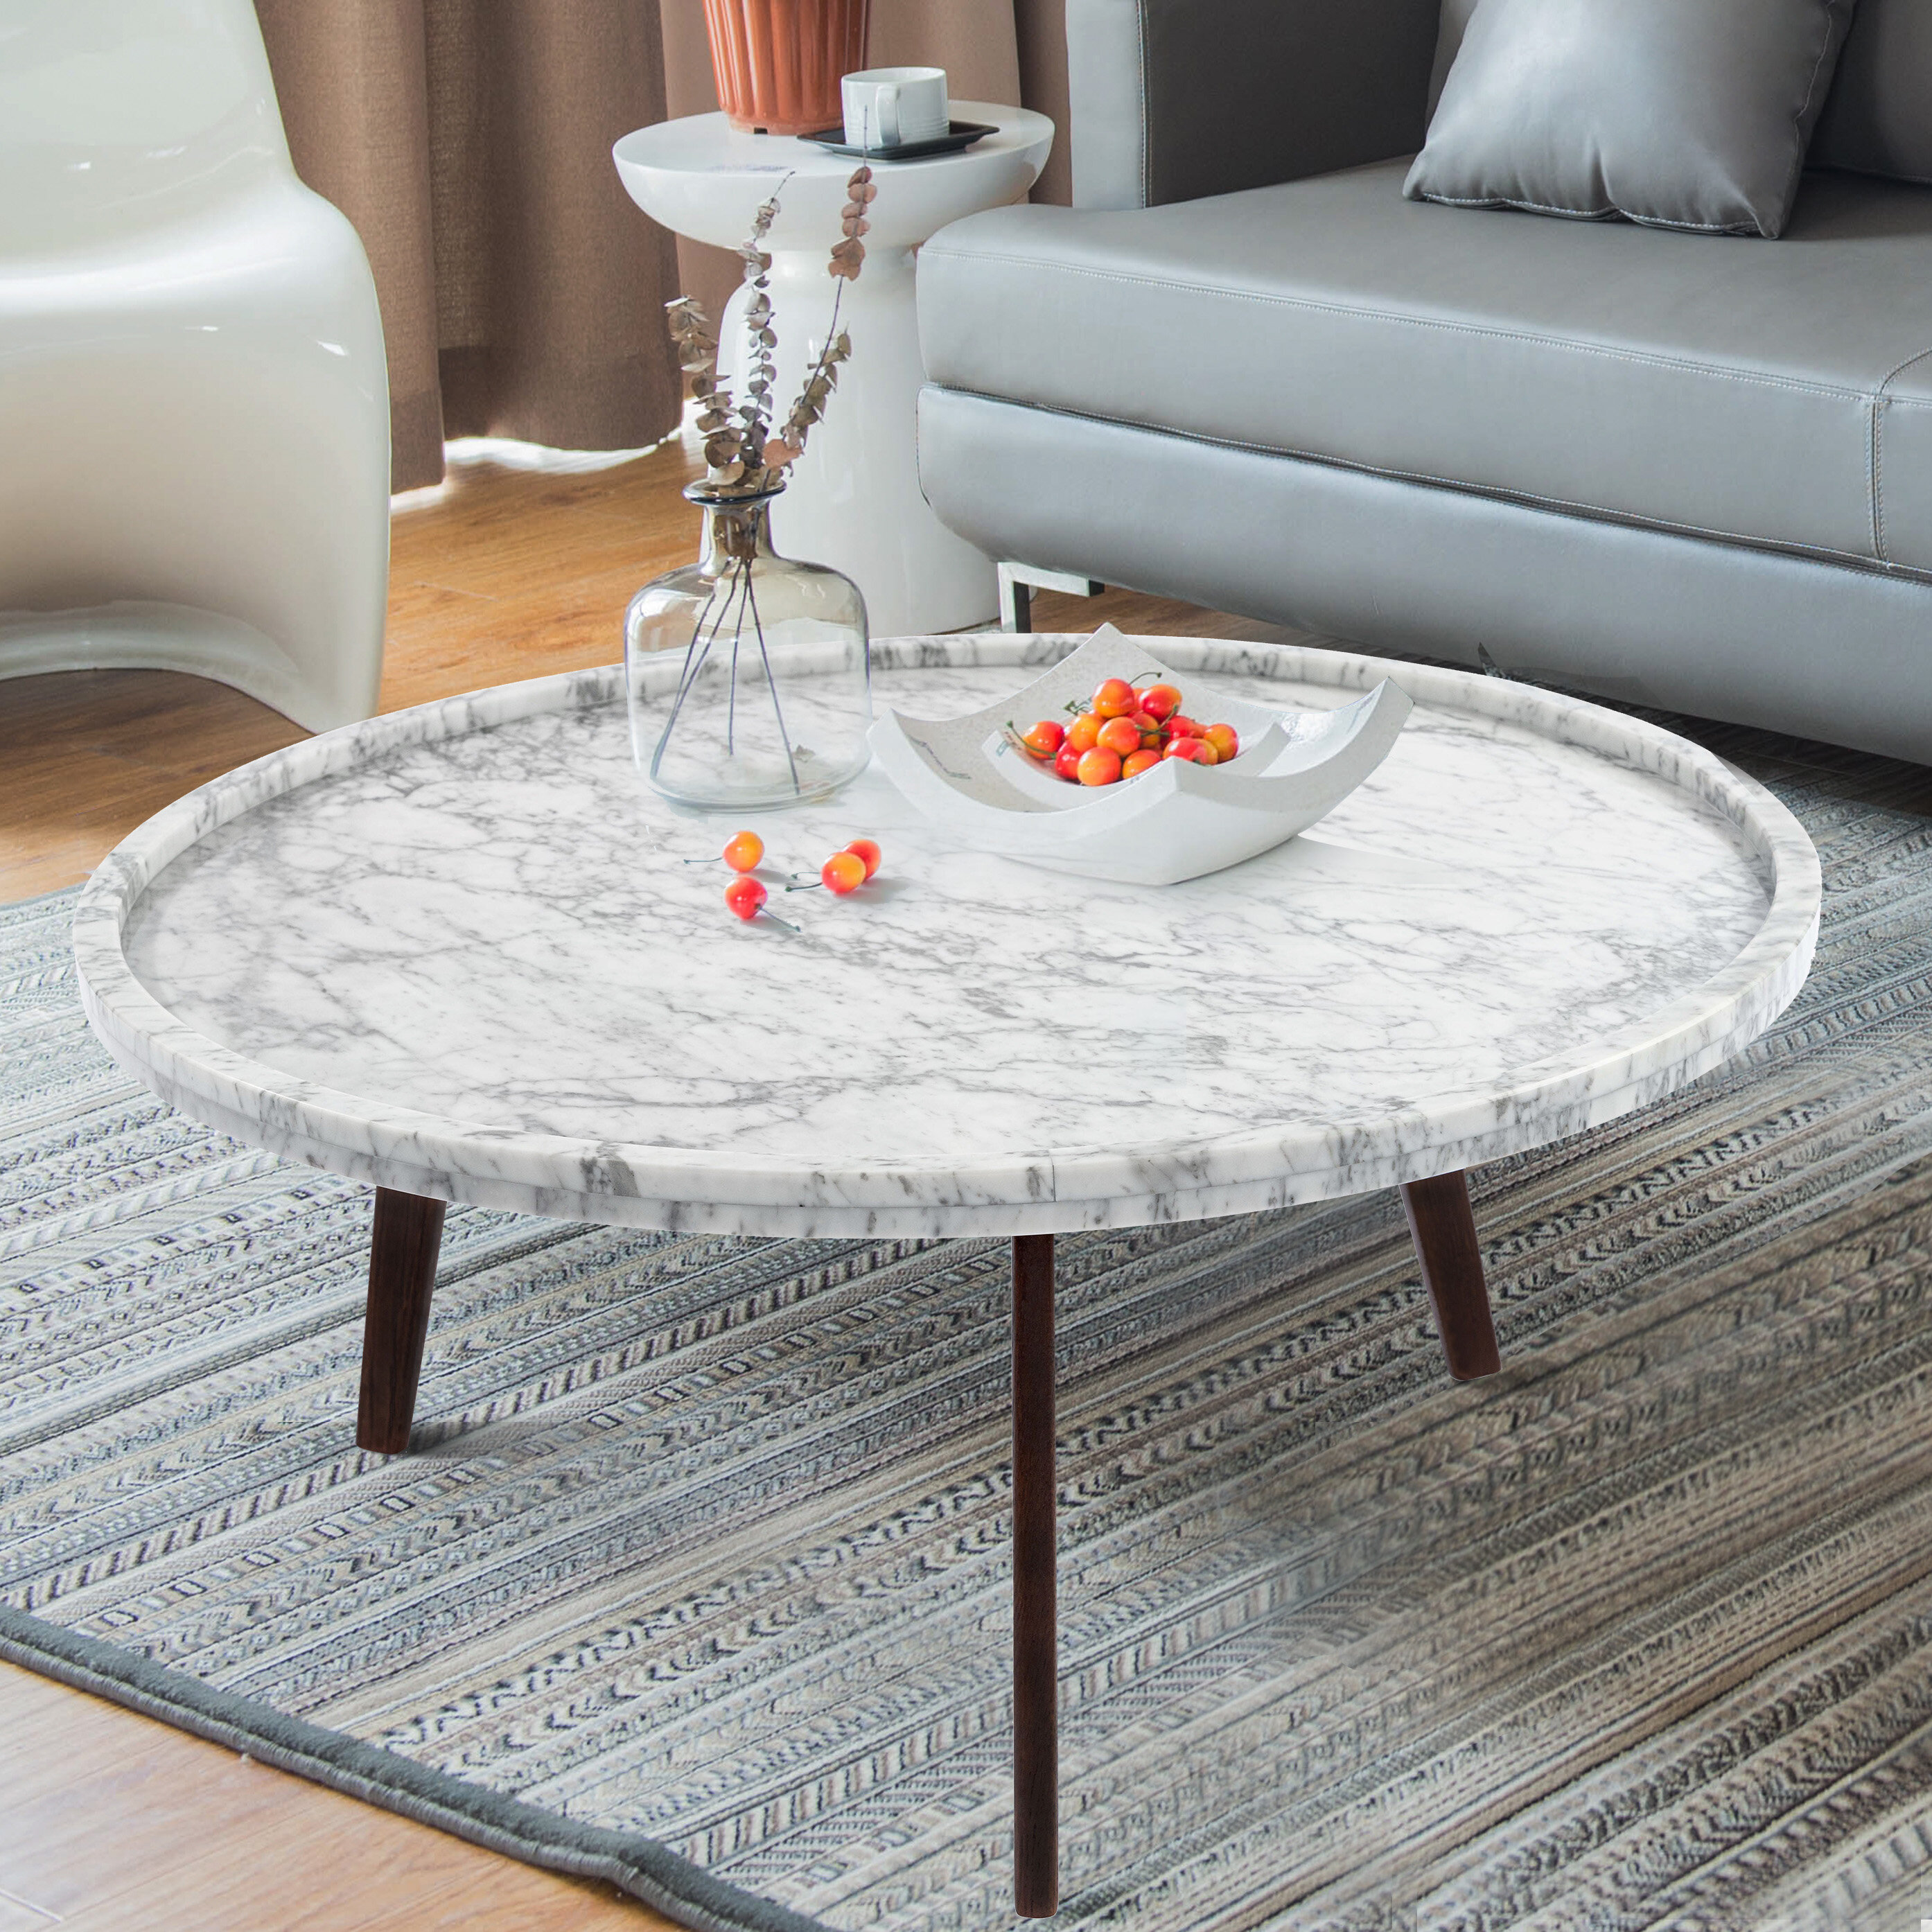 Ivy Bronx Griselda 31 Round Italian Carrara White Marble Coffee Table Reviews Wayfair